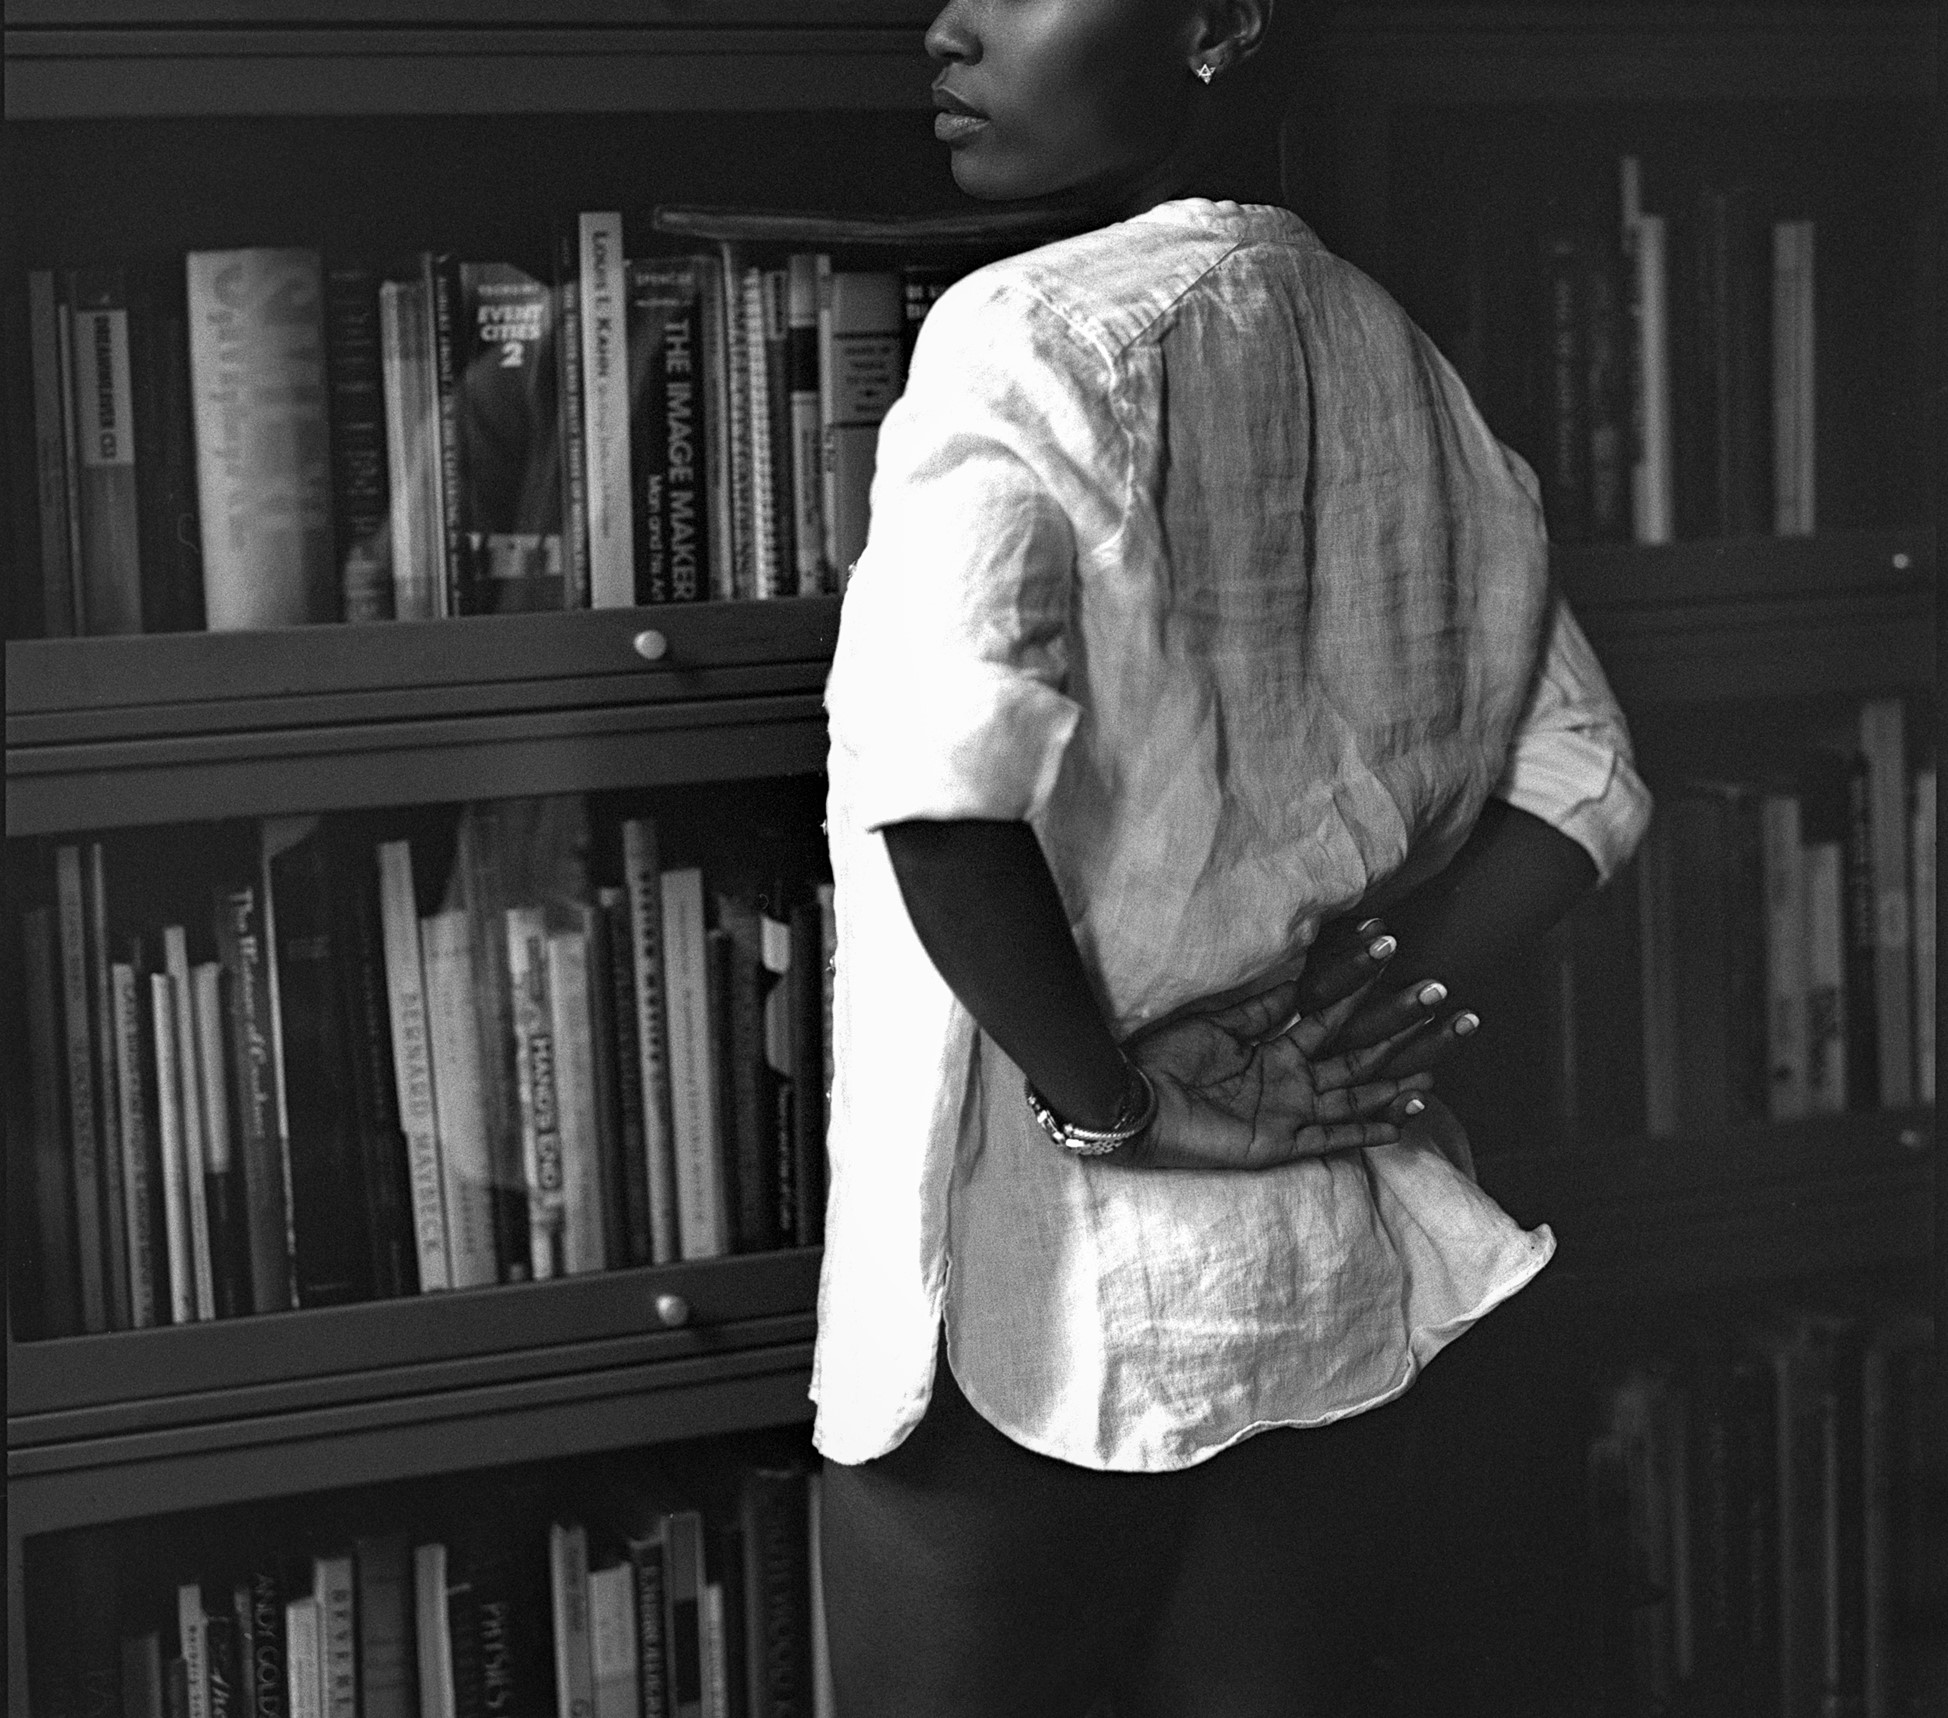 Nia Bolde linen shirt and books